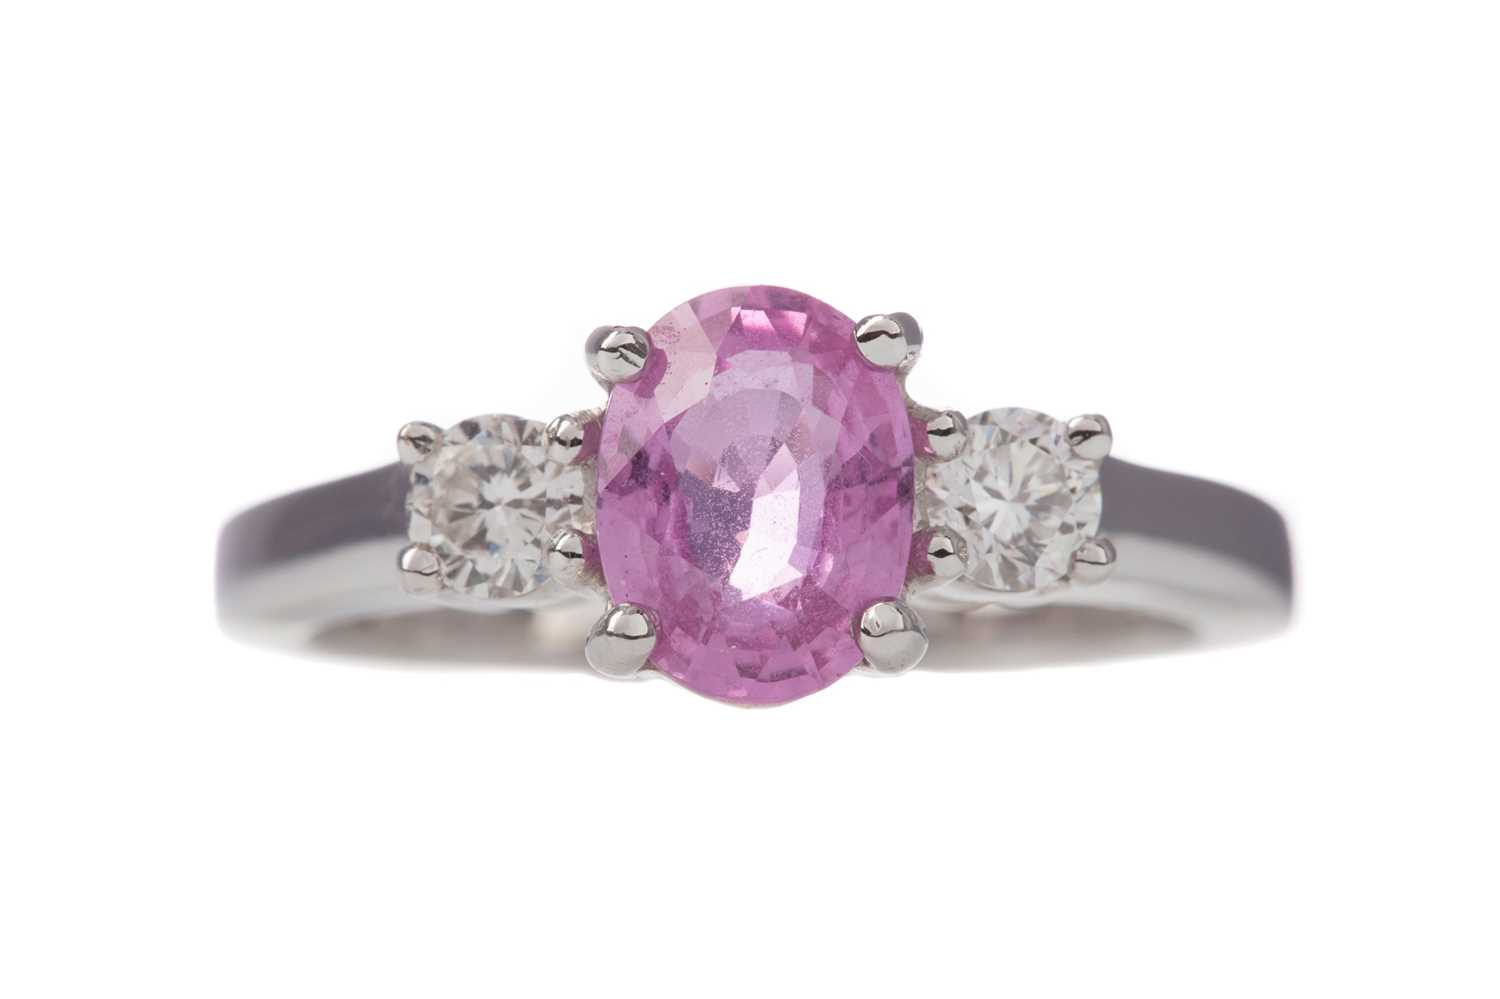 Lot 1349 - A PINK SAPPHIRE AND DIAMOND RING